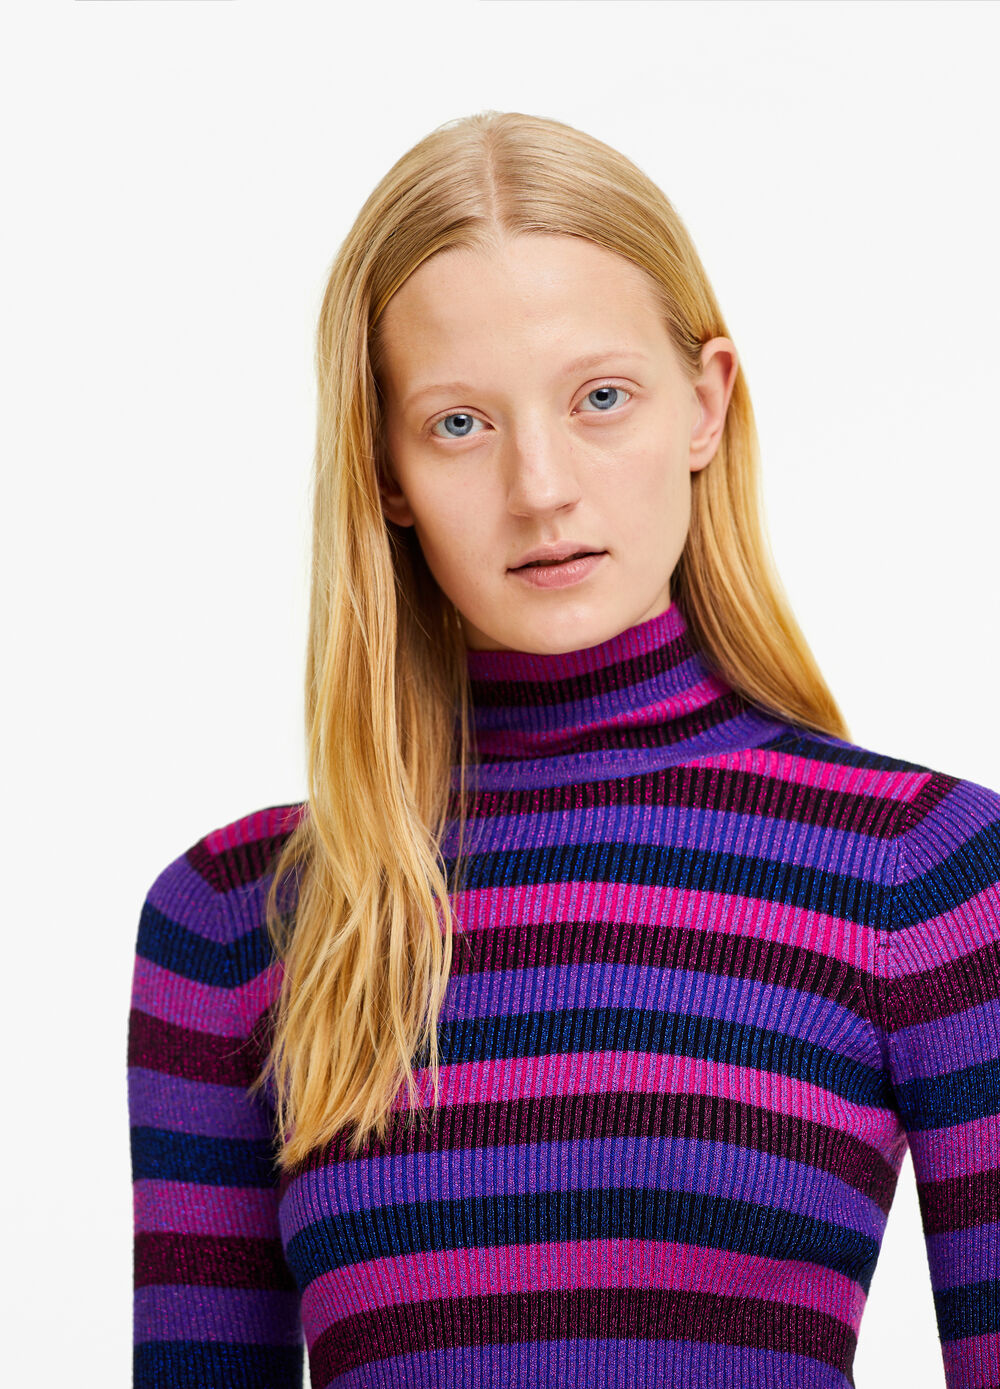 Viscose blend pullover with high neck and stripes